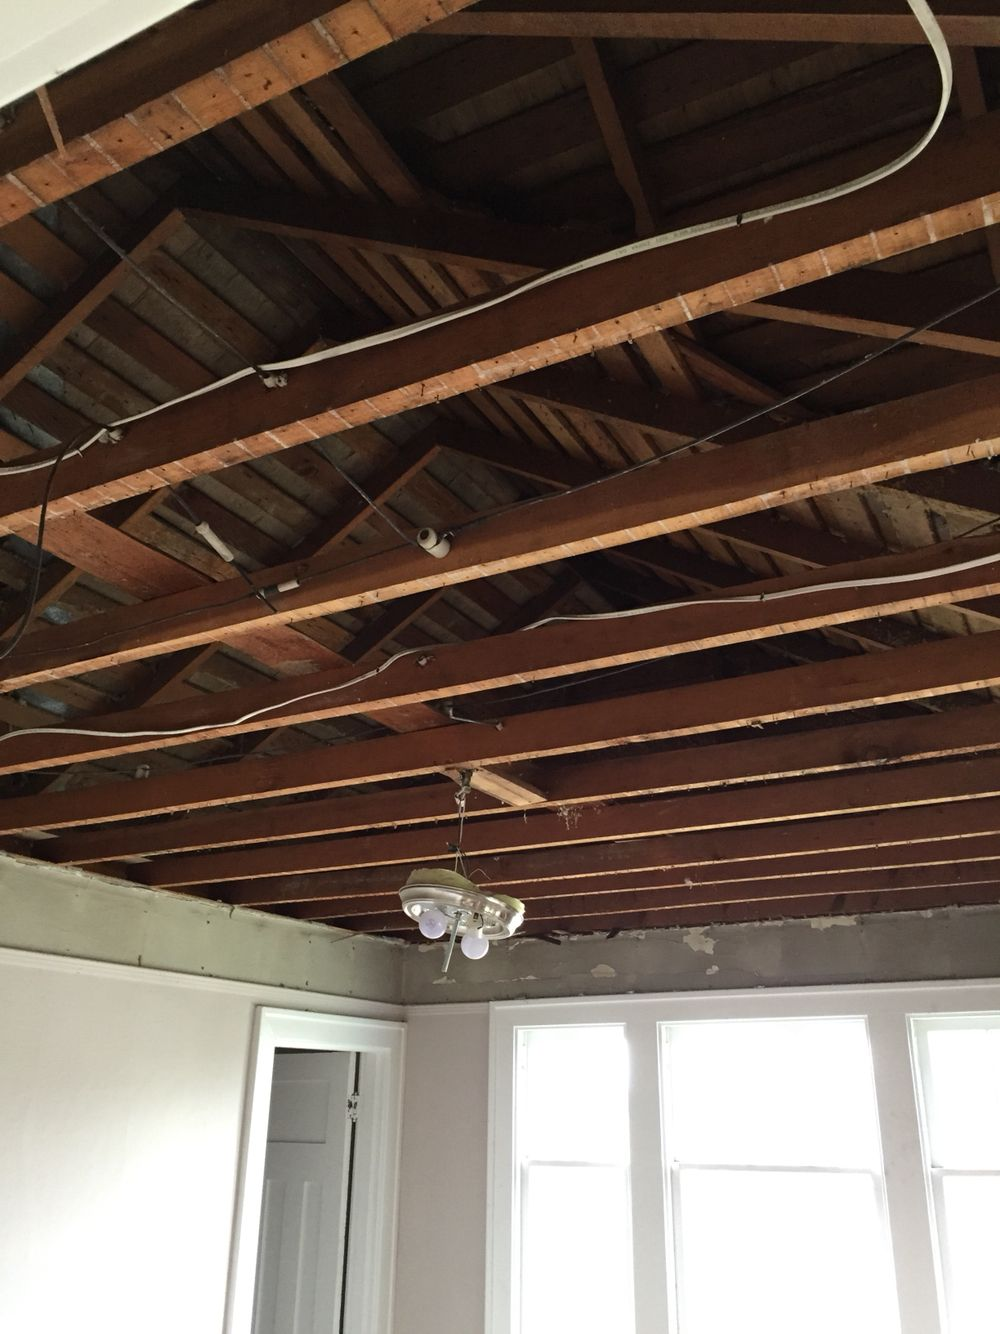 Replacing The Sagging Lath And Plaster Ceilings With Vaulted